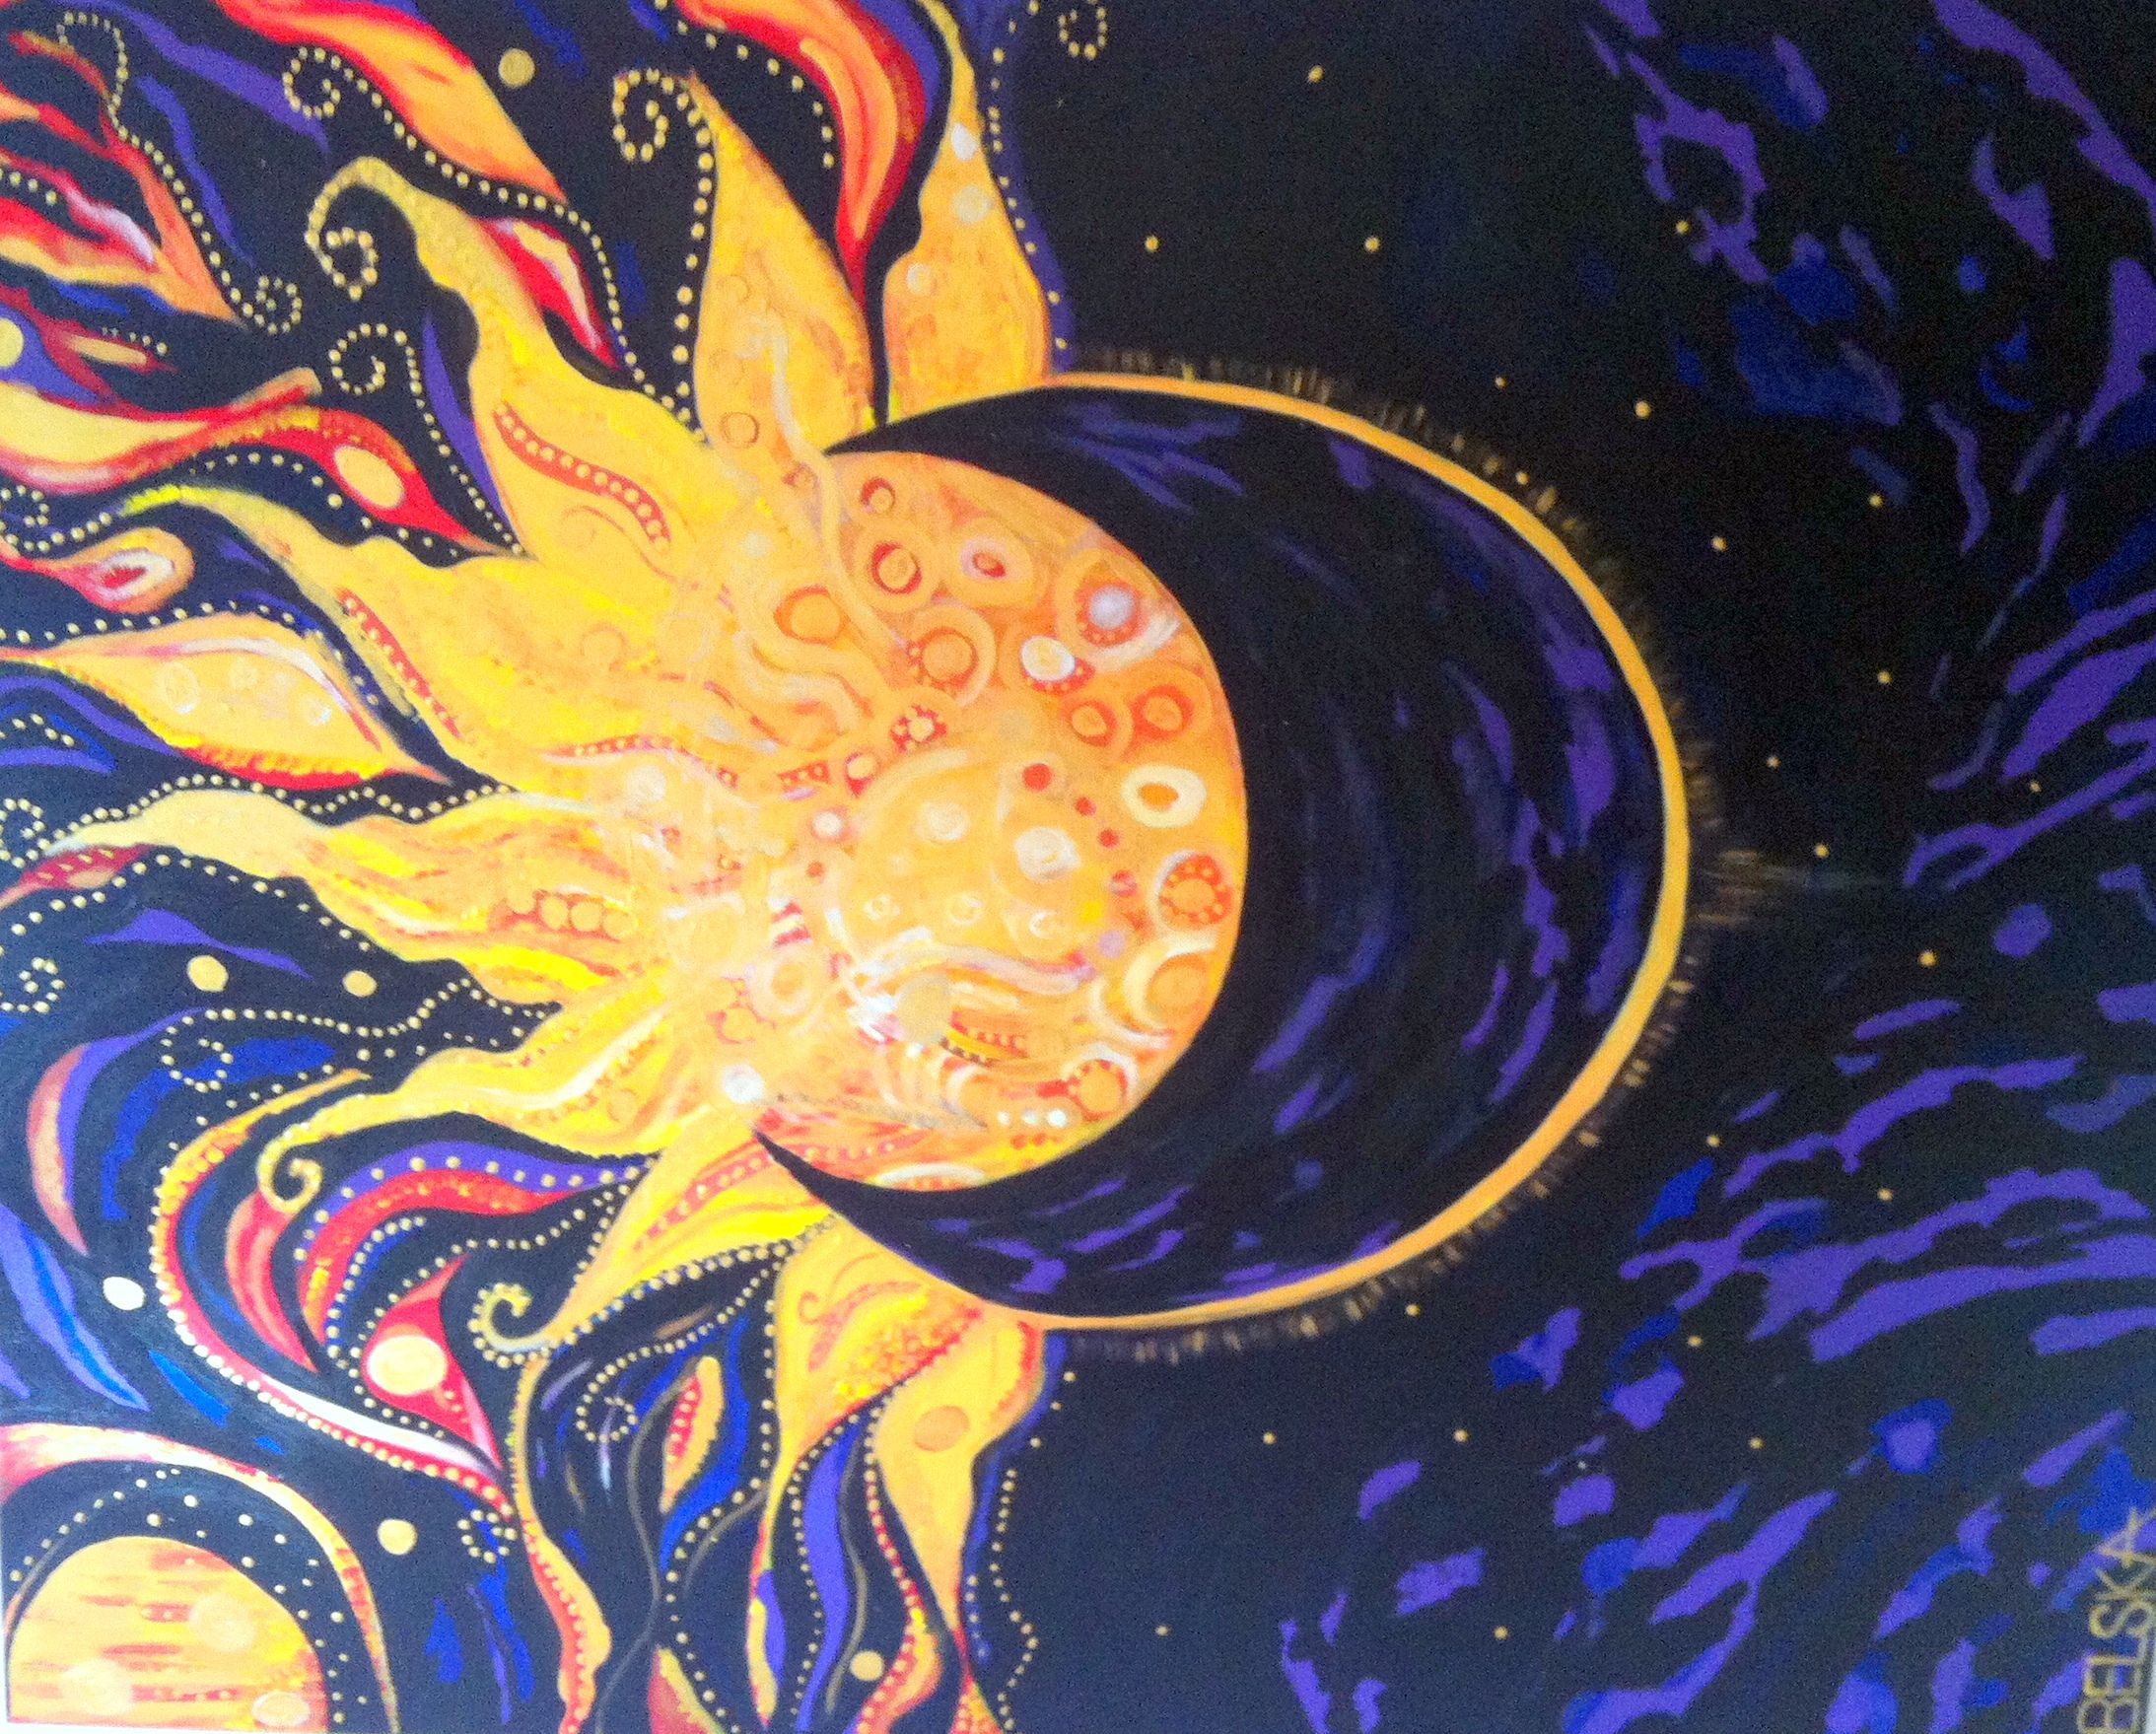 painting of the sun | Paintings (Originals) For Sale | "|2187|1759|?|en|2|956fdfdf49efa6f54c68e4fc47de073b|False|UNLIKELY|0.3243536651134491